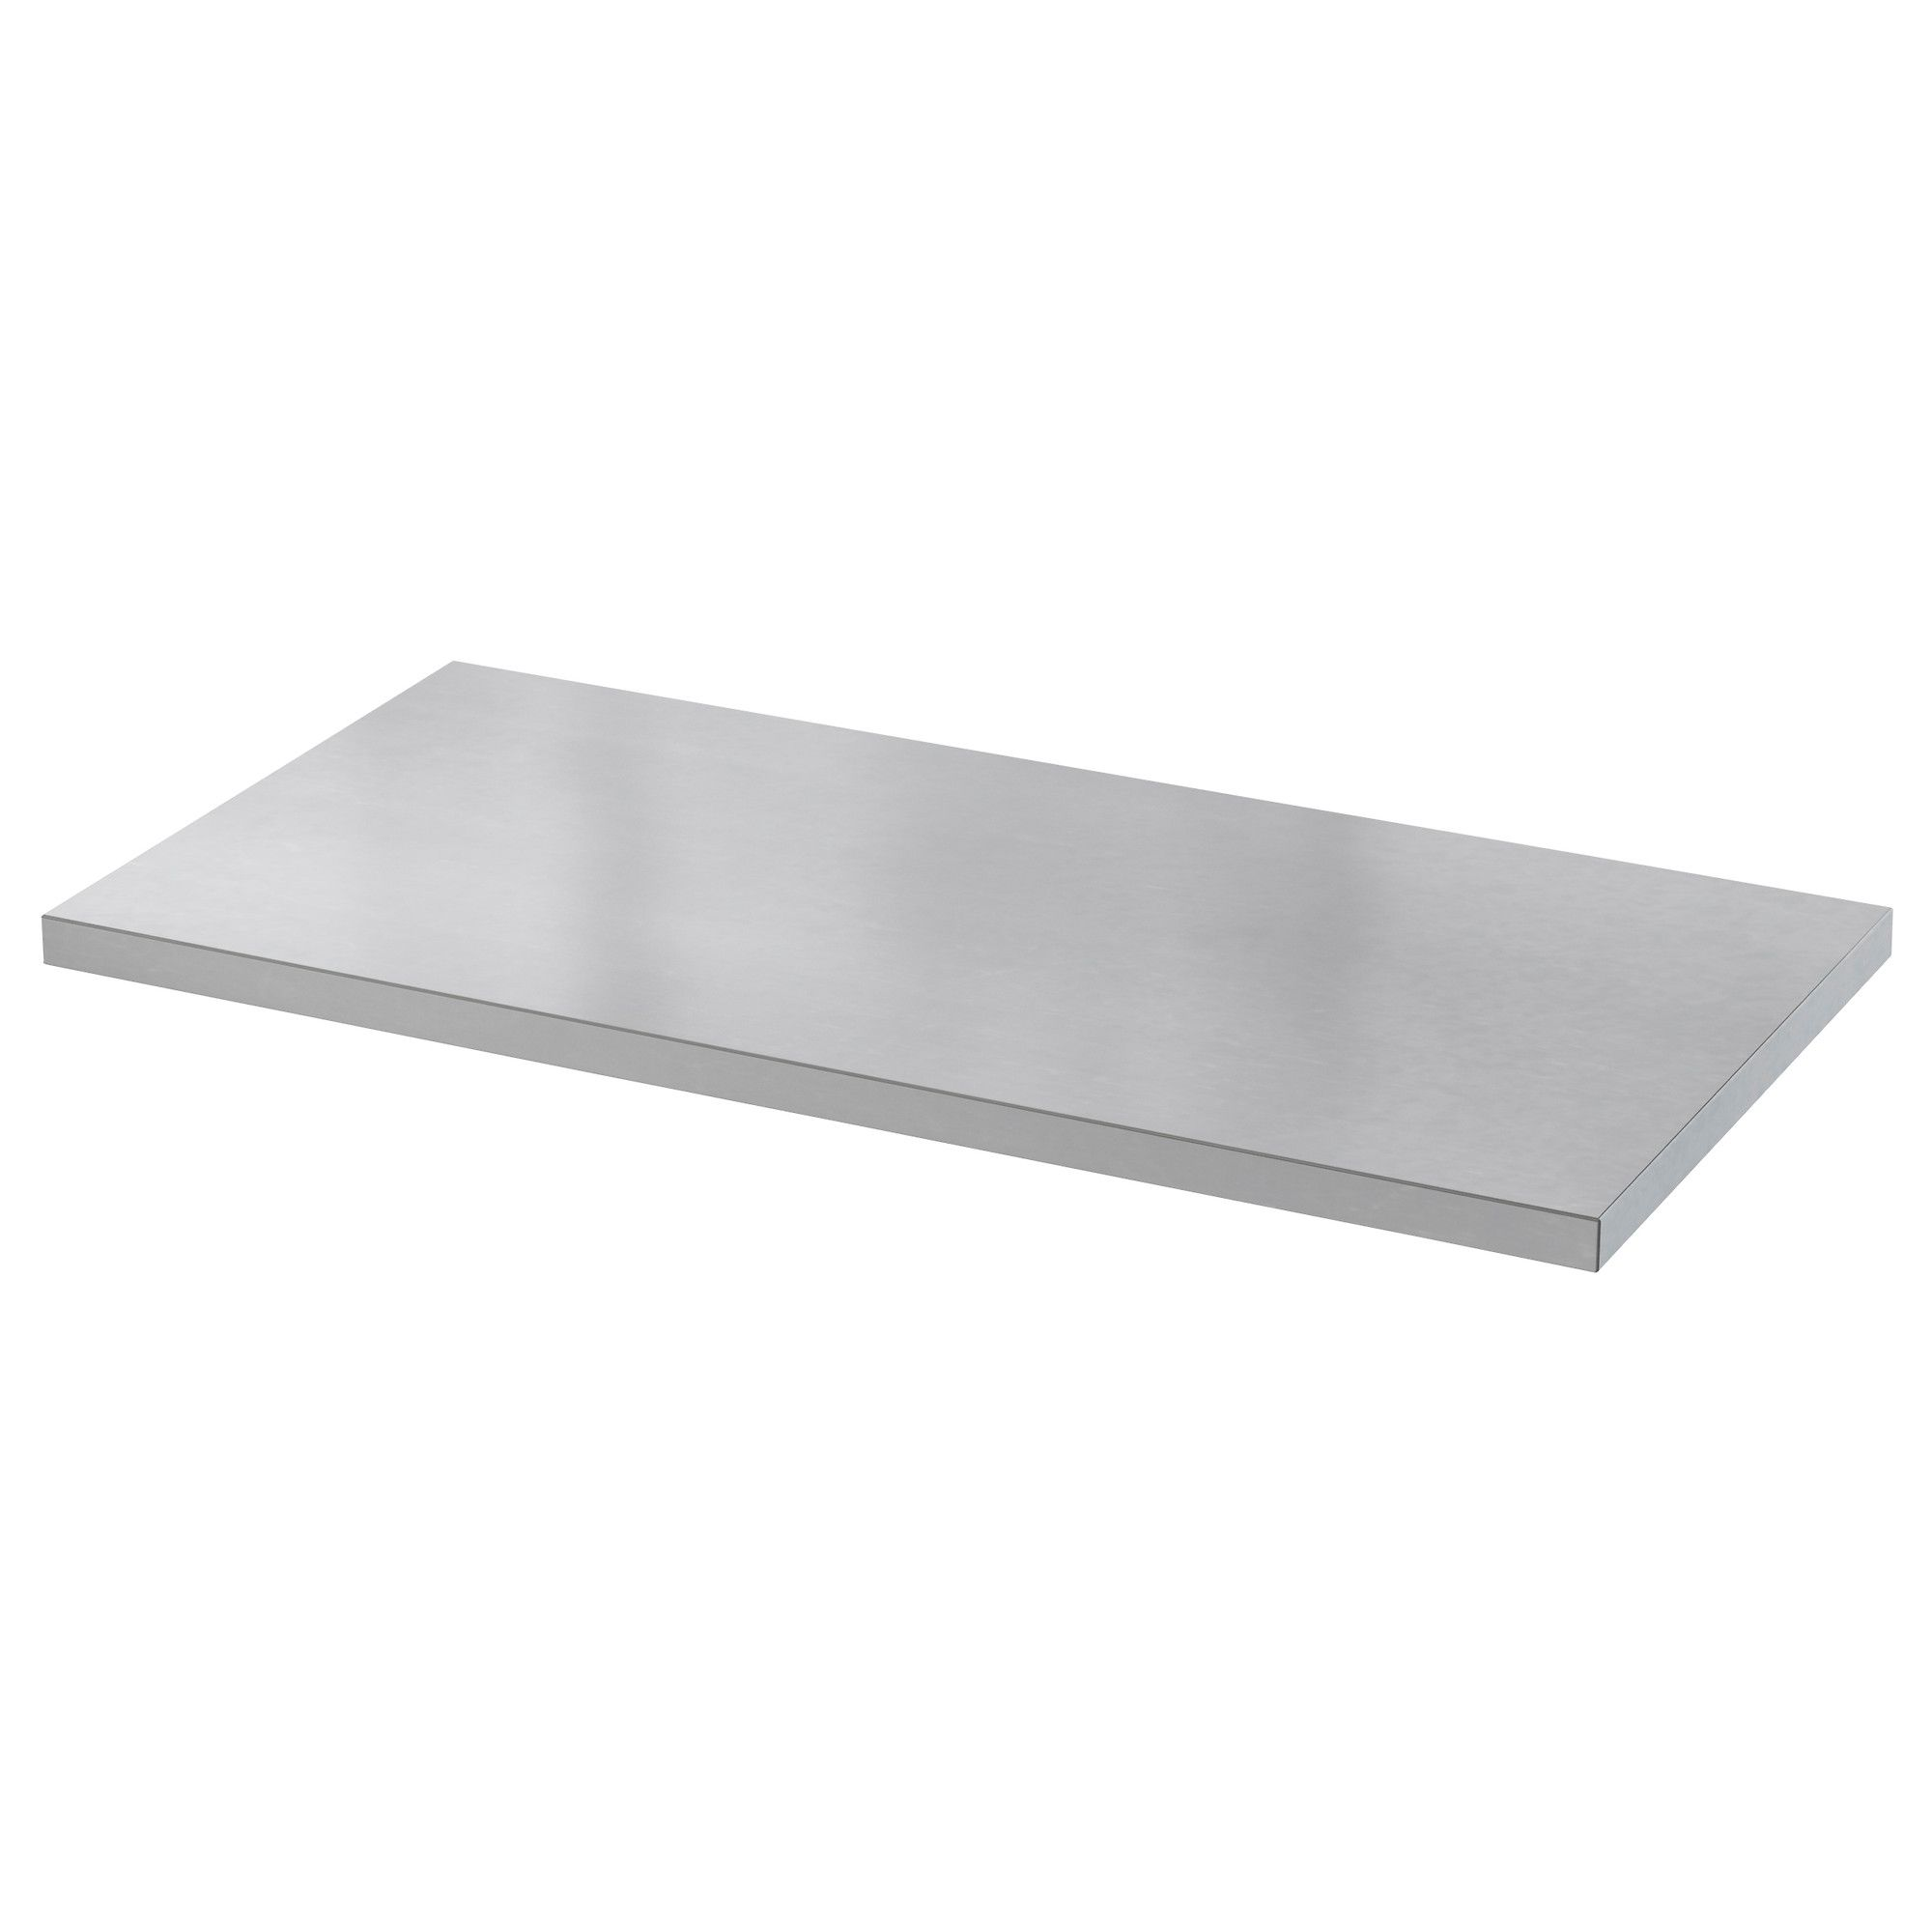 Ikea Us Furniture And Home Furnishings Ikea Table Tops Stainless Steel Table Top Ikea Table